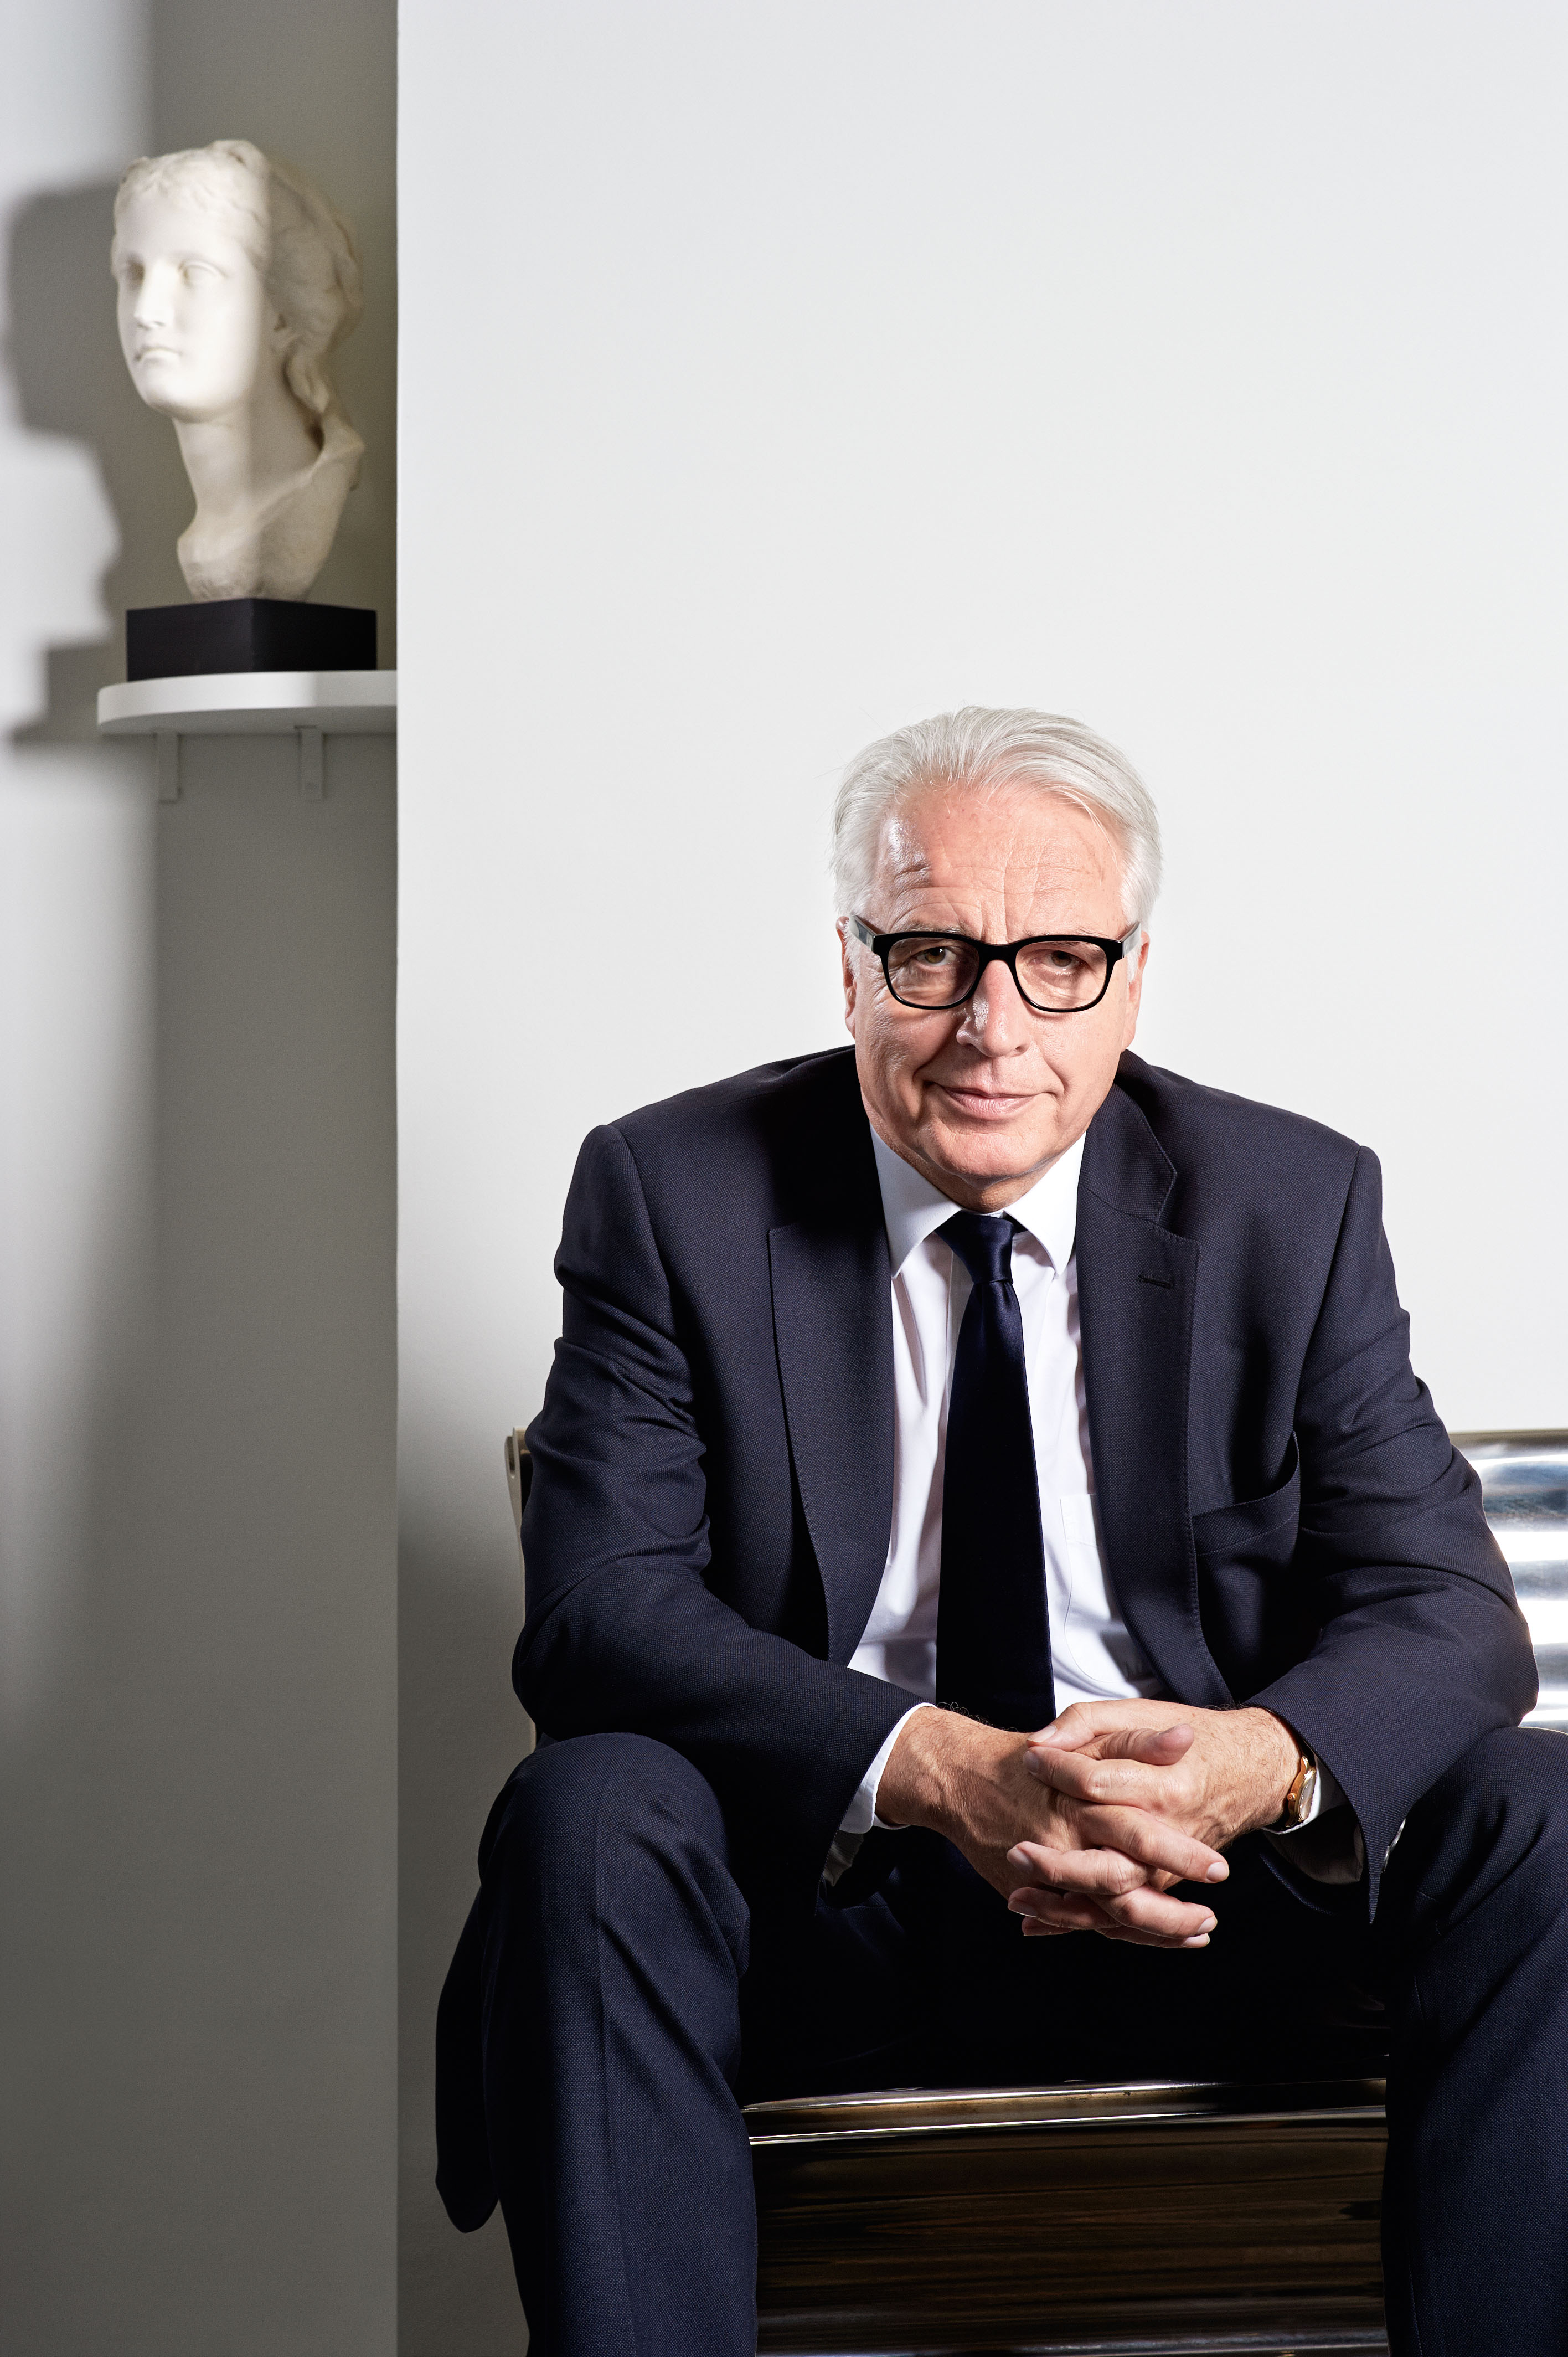 Martin Roth, current director at V&A © Thierry Bal